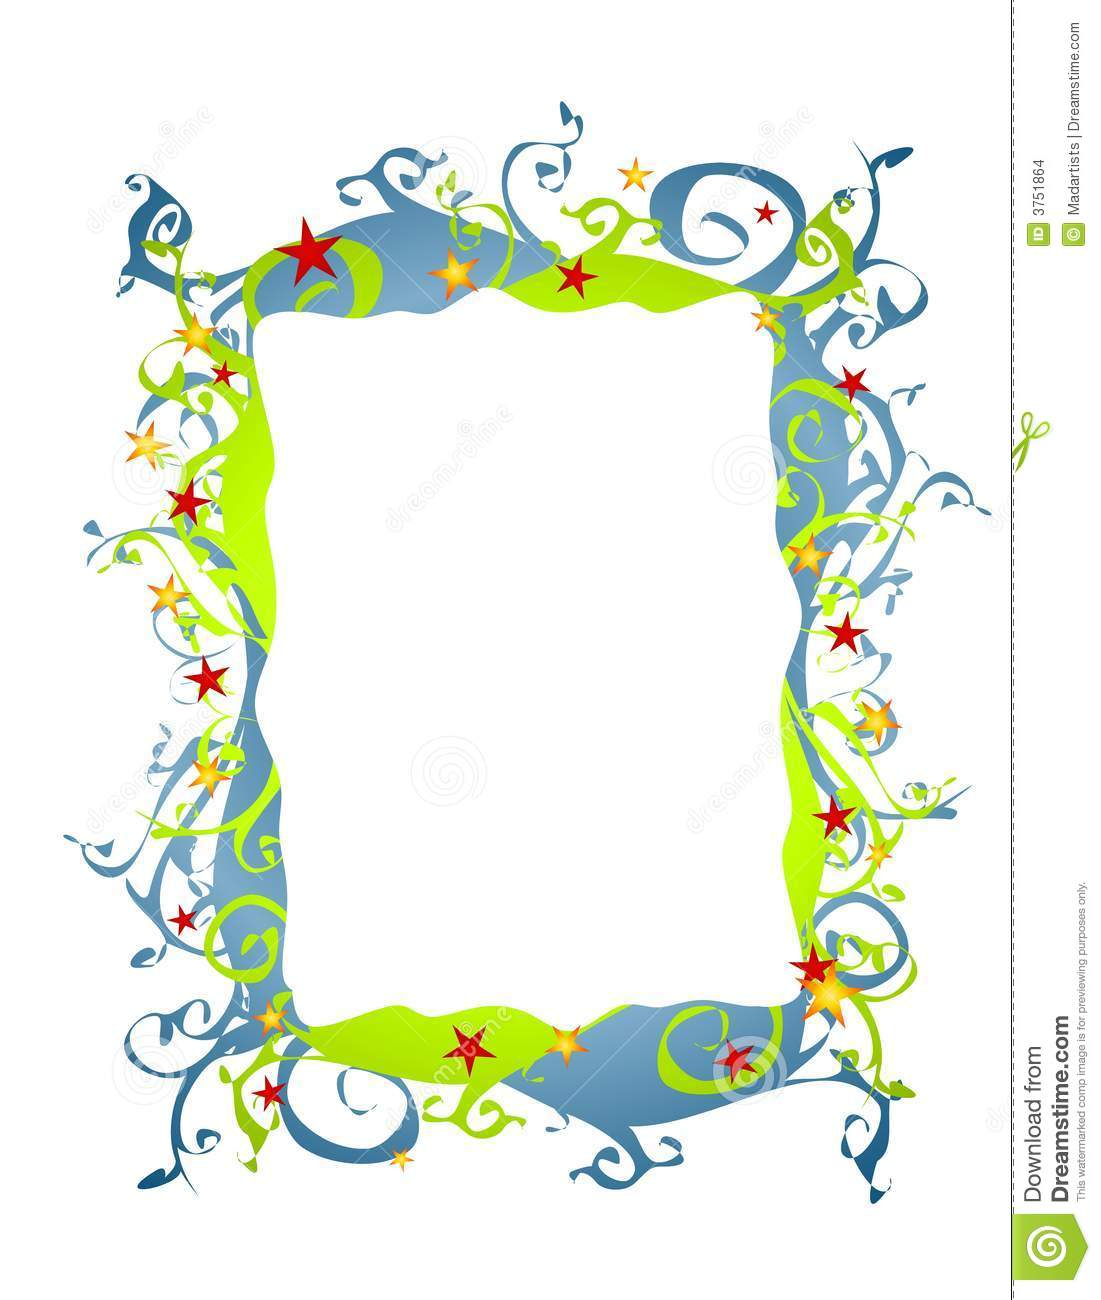 Christmas picture frame clip art clipart panda free clipart images christmas20stars20border jeuxipadfo Gallery